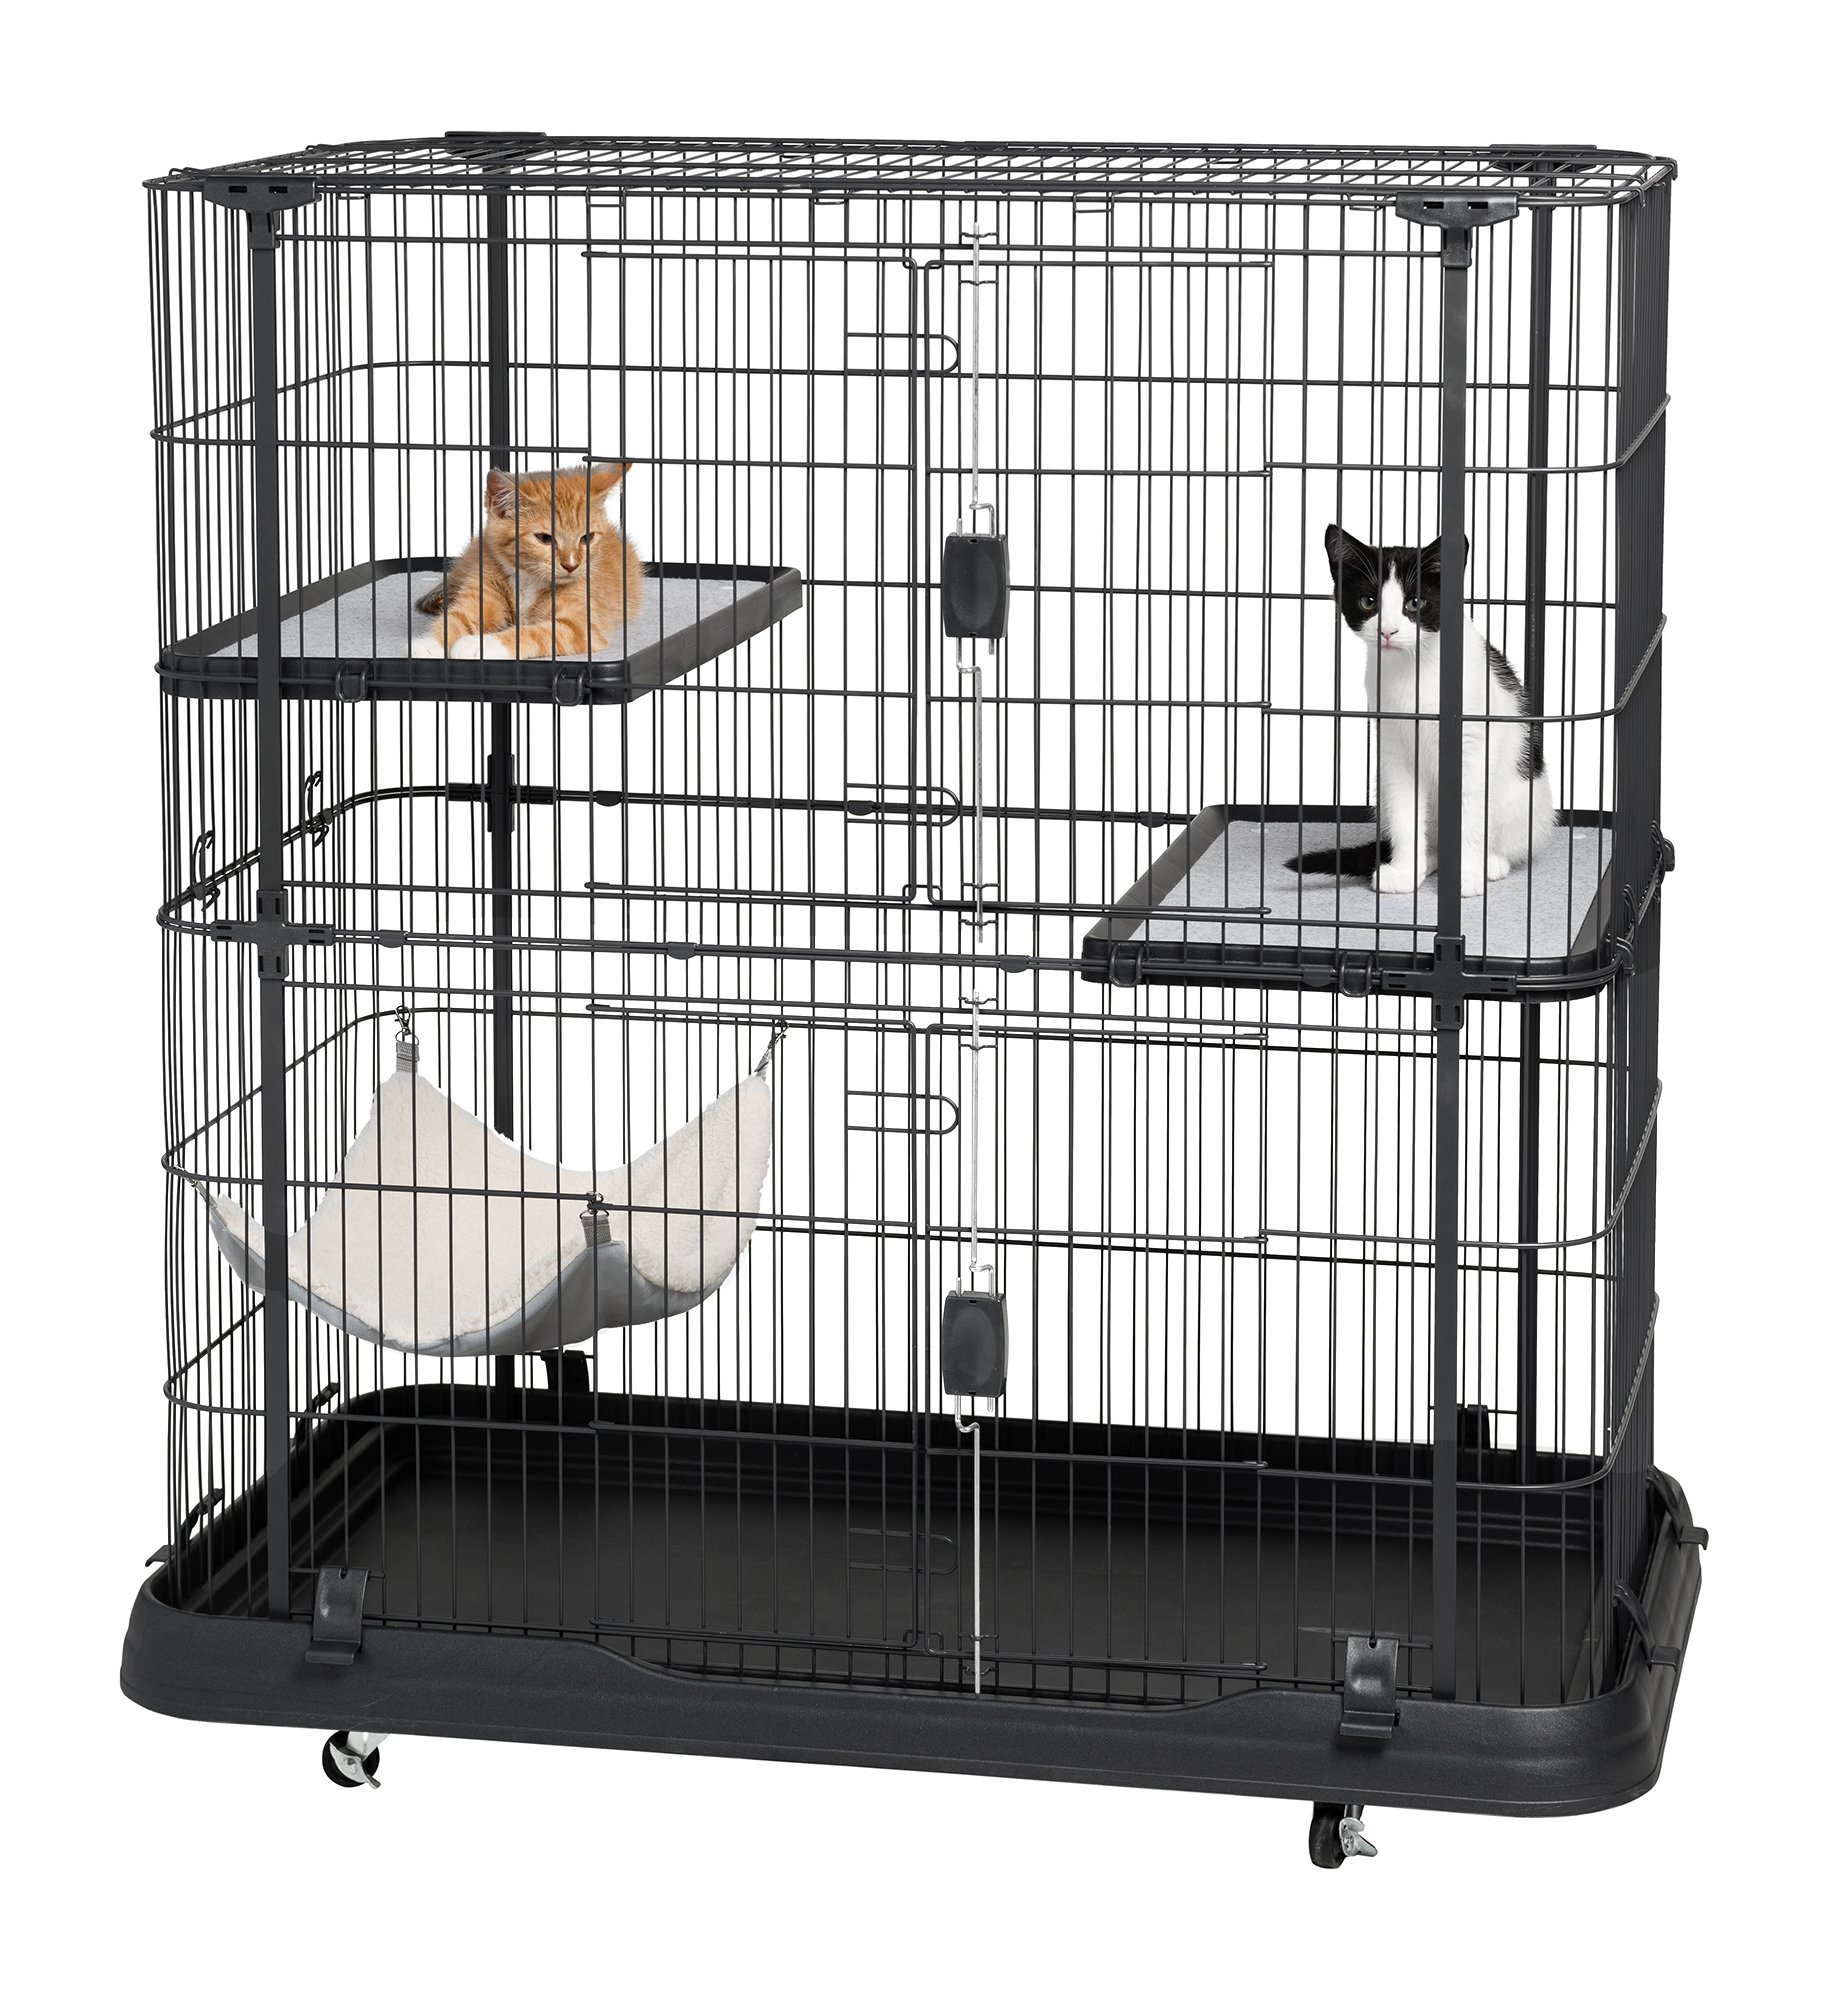 Prevue Pet Products 7501 Deluxe Cat Home with 3 Levels, Black